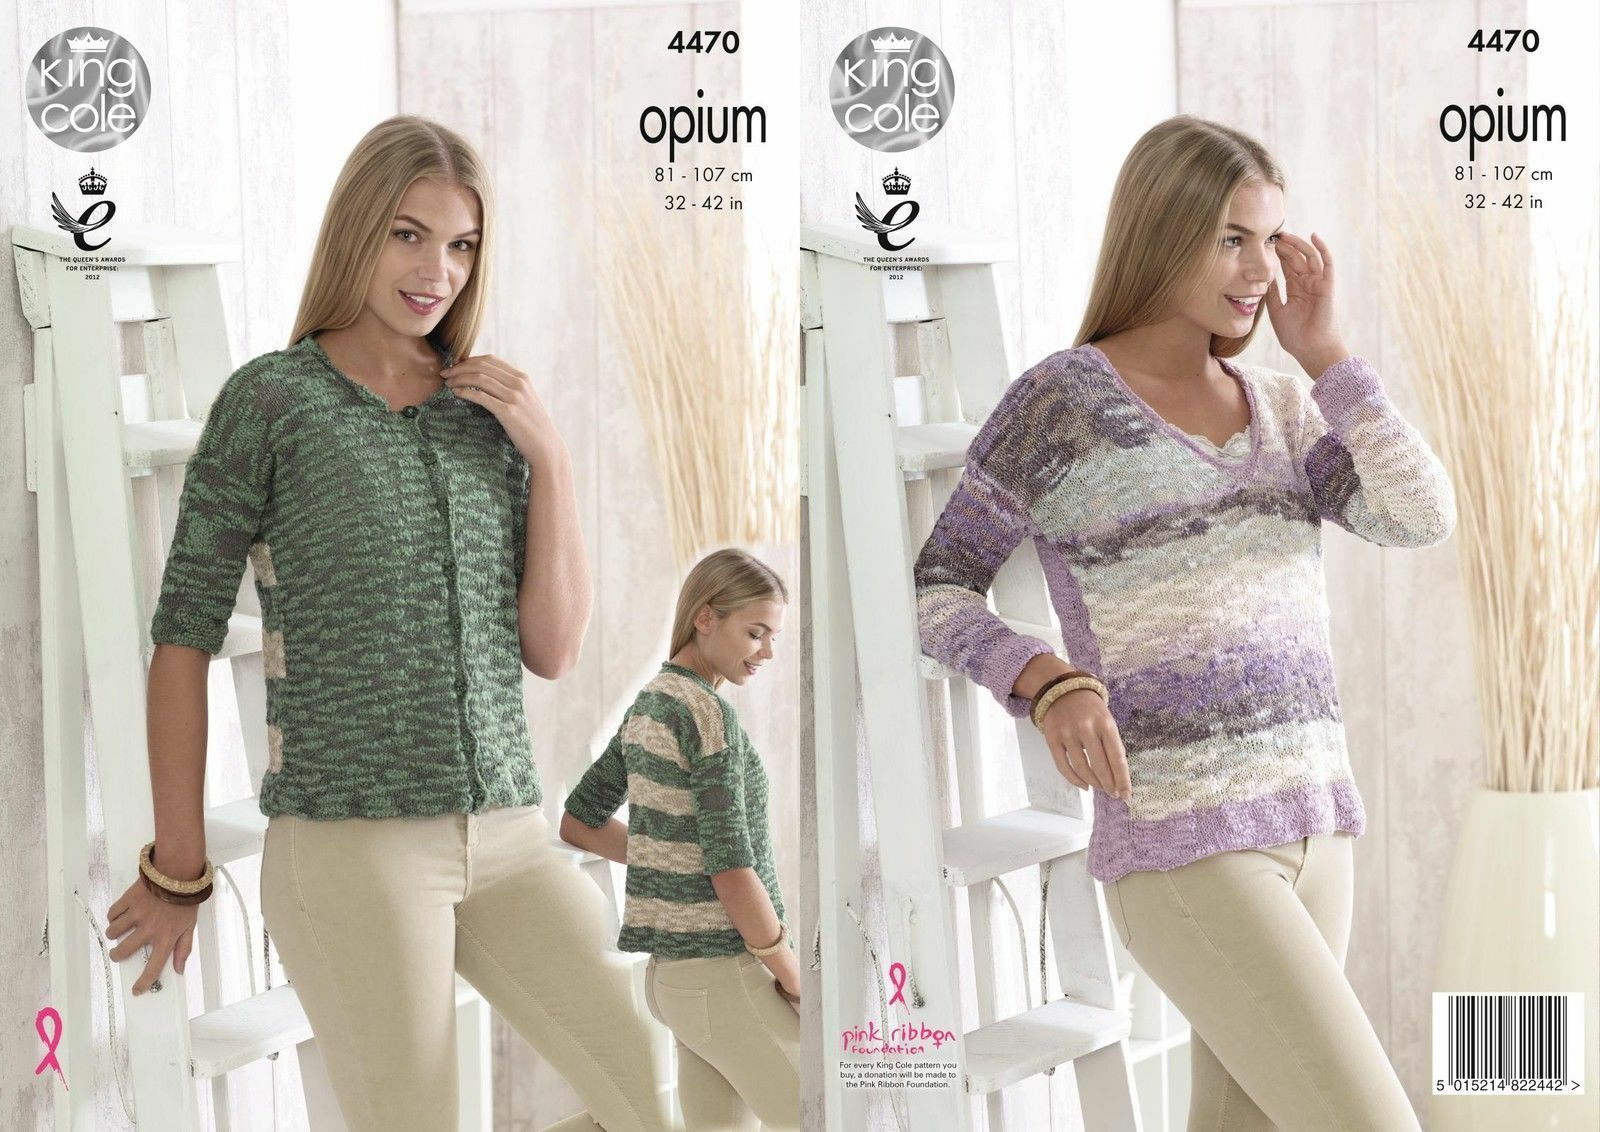 a6484c90a King Cole 4470 Knitting Pattern Ladies Sweater and Cardigan in Opium ...